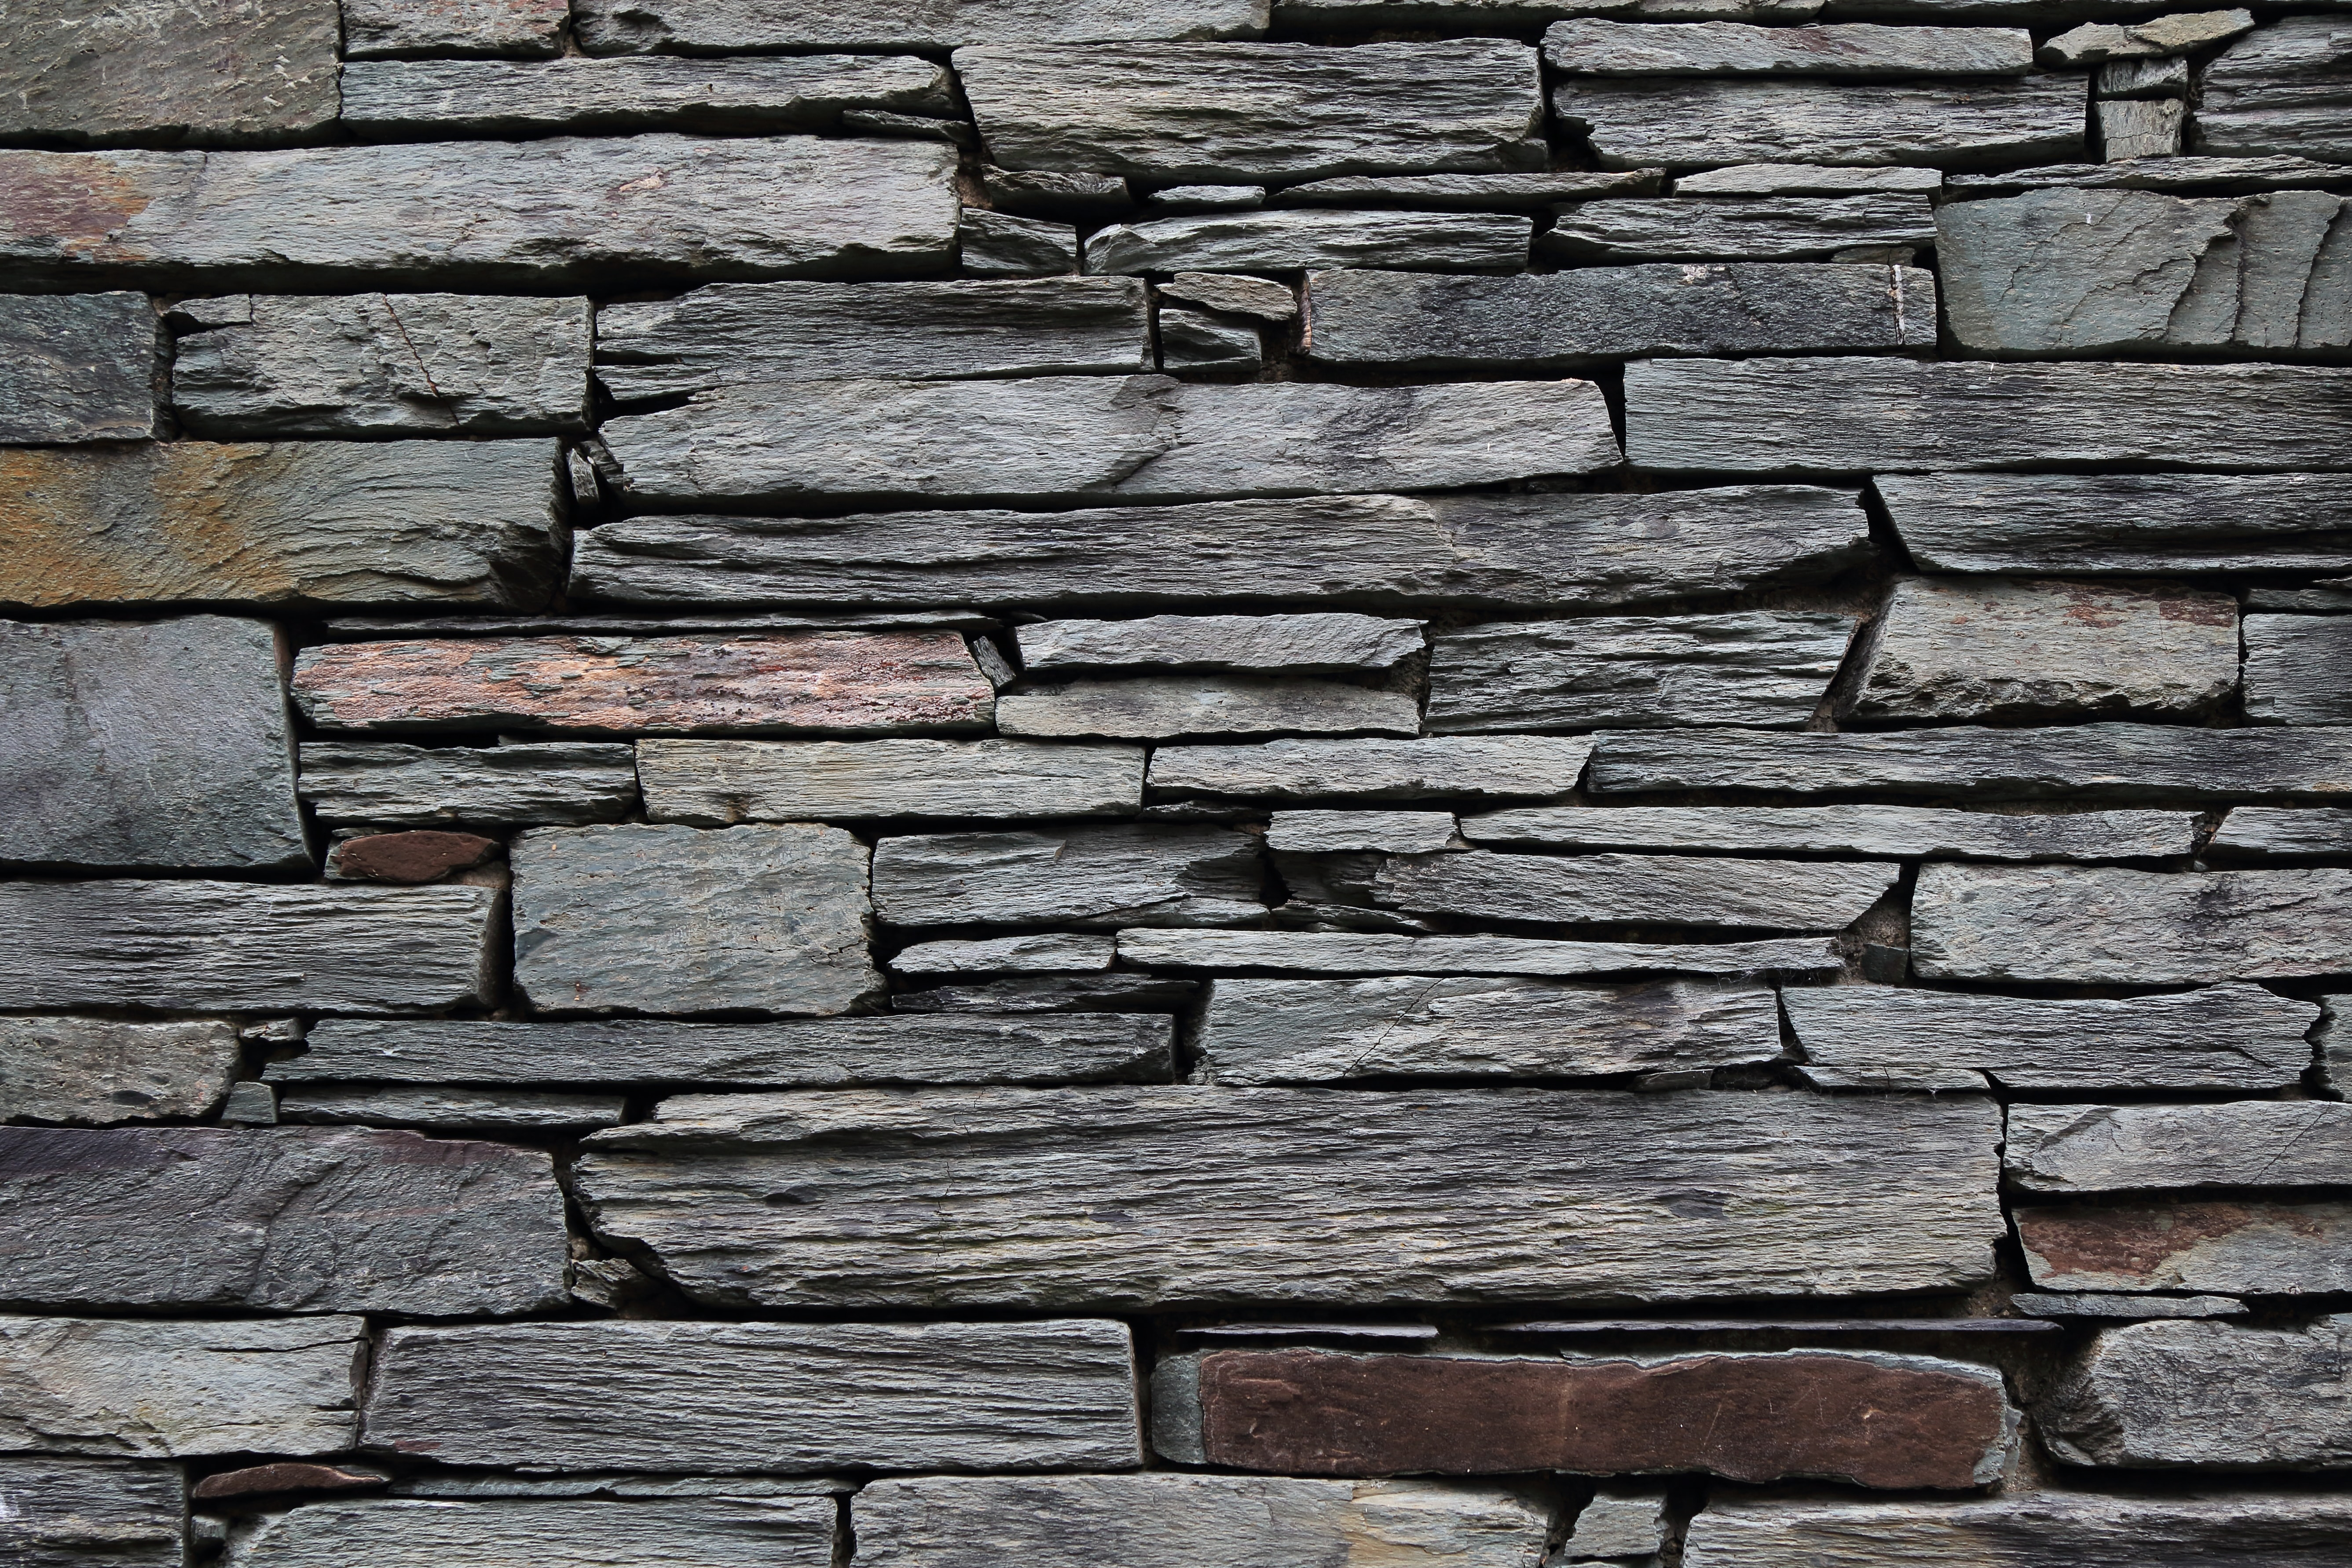 minimalist photography of gray rock wall